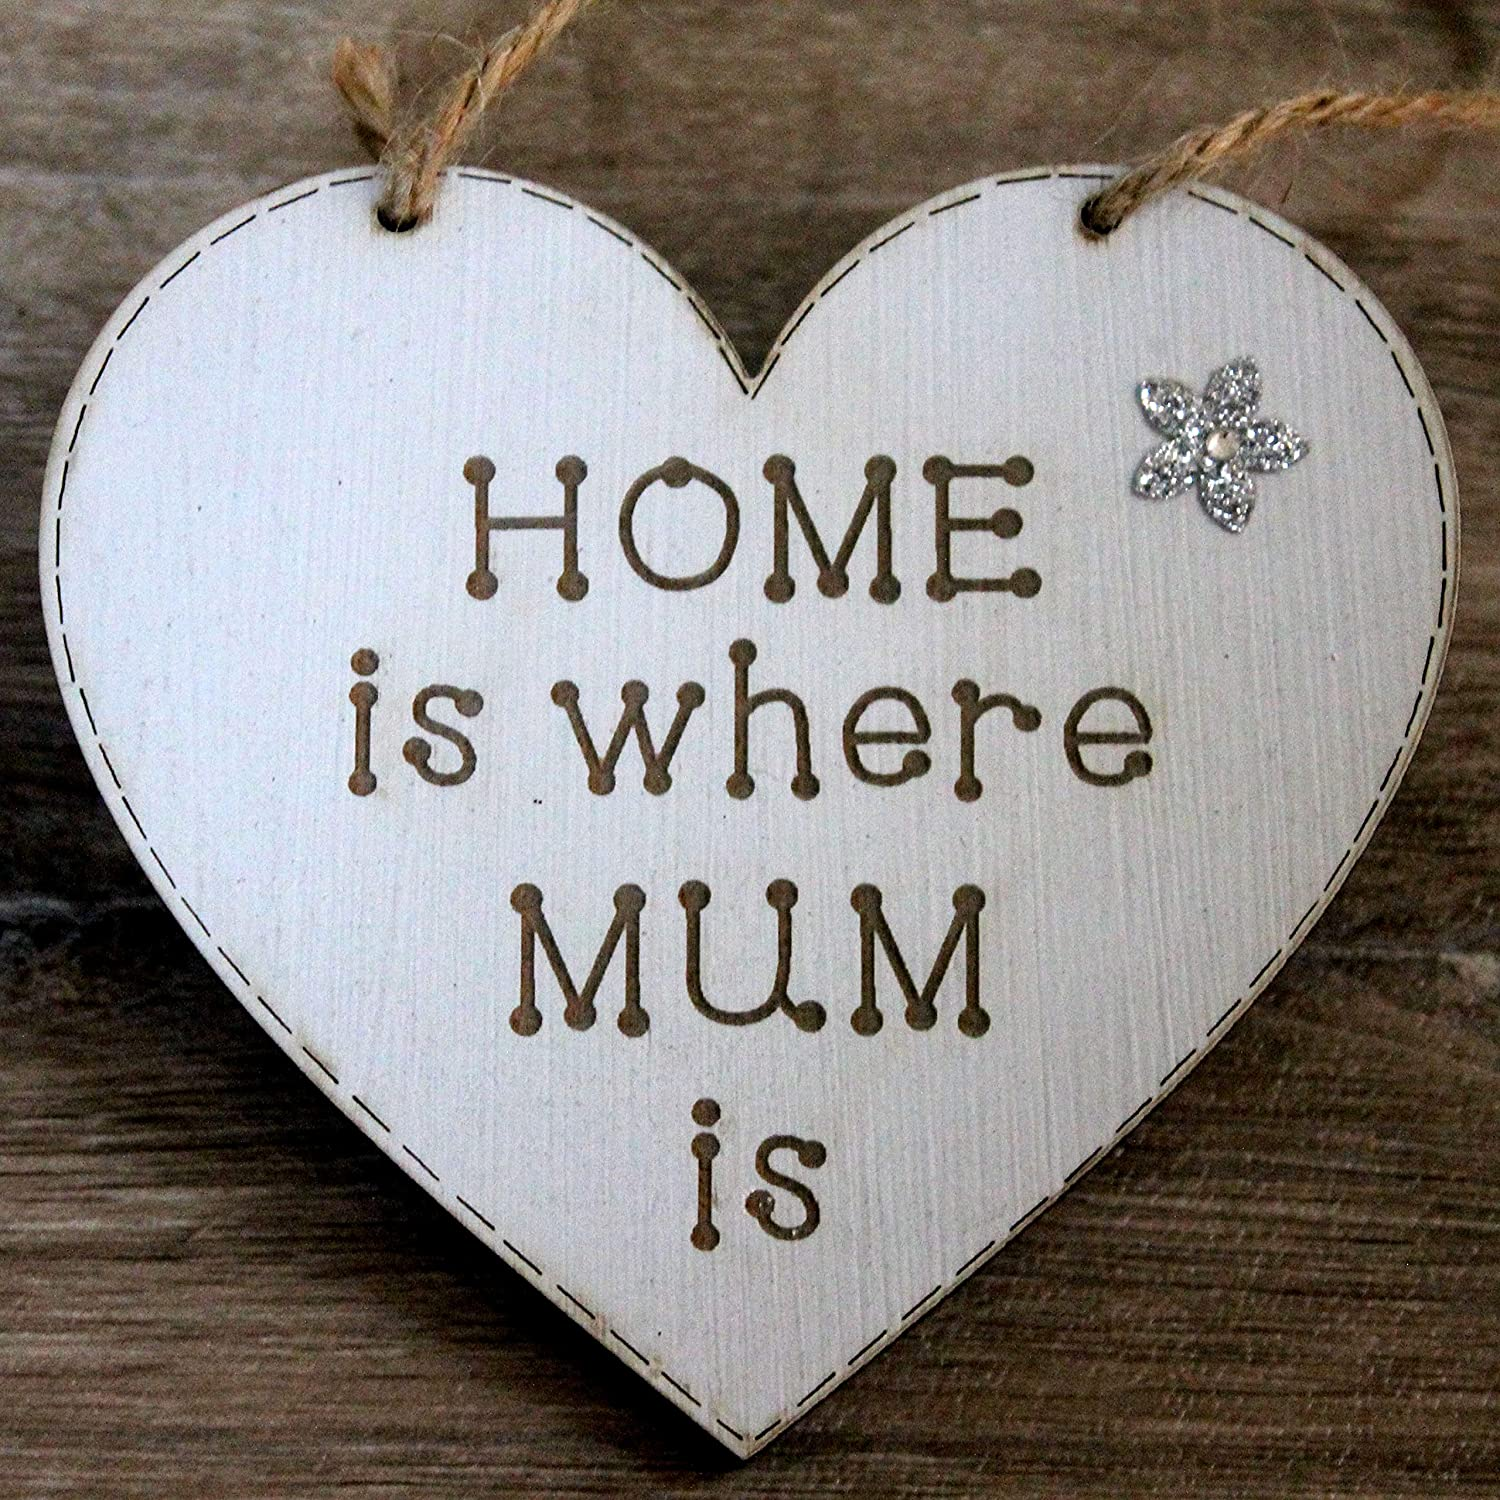 Home Is Where MUM Is Gift Heart Shape From Daughter and Son Light Grey